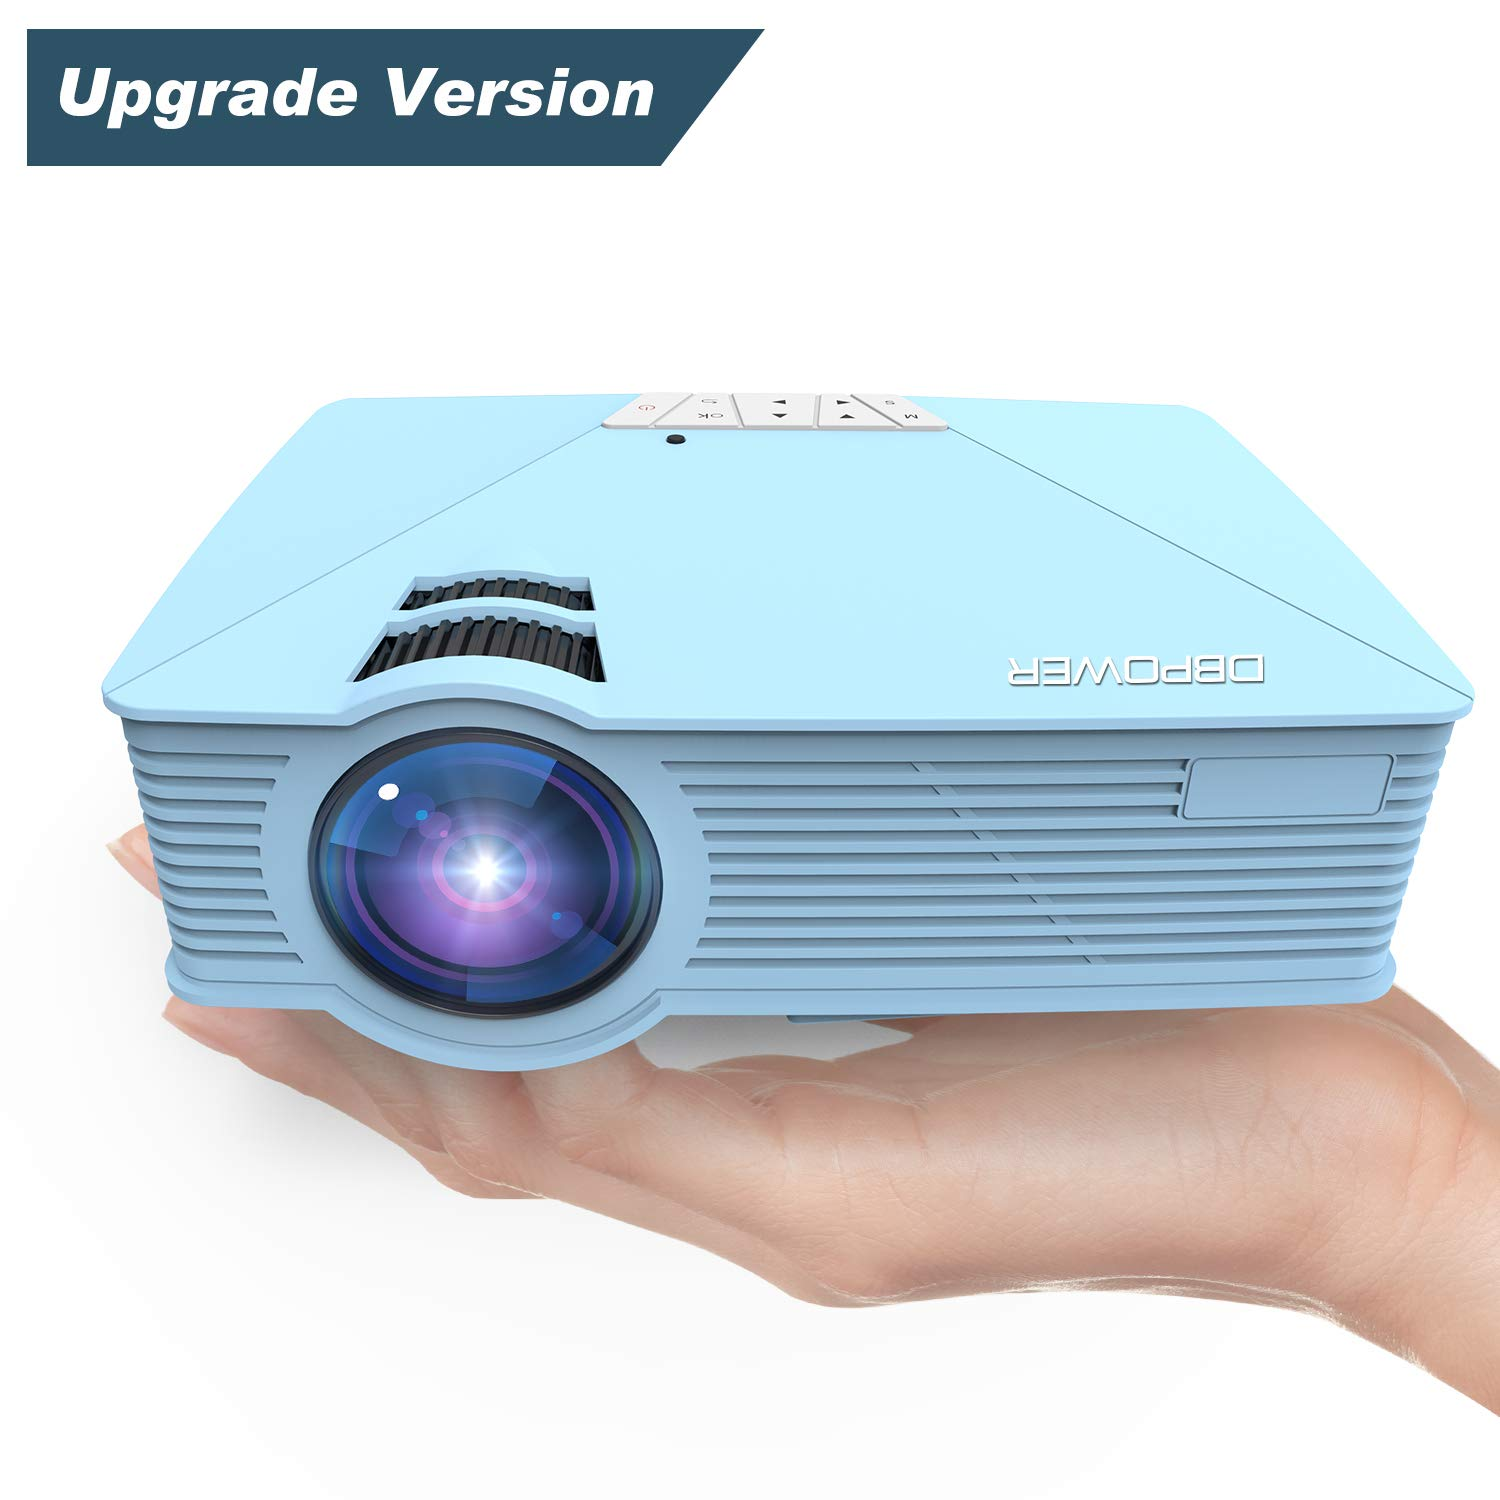 Mini Projector, DBPOWER GP15 +50% Brighter Portable LCD Mini Video Projectors,50000Hours Support 1080P HDMI USB SD Card VGA AV for Multimedia Home Cinema, Movie, TV, Laptops, Games, Smartphones, Blue